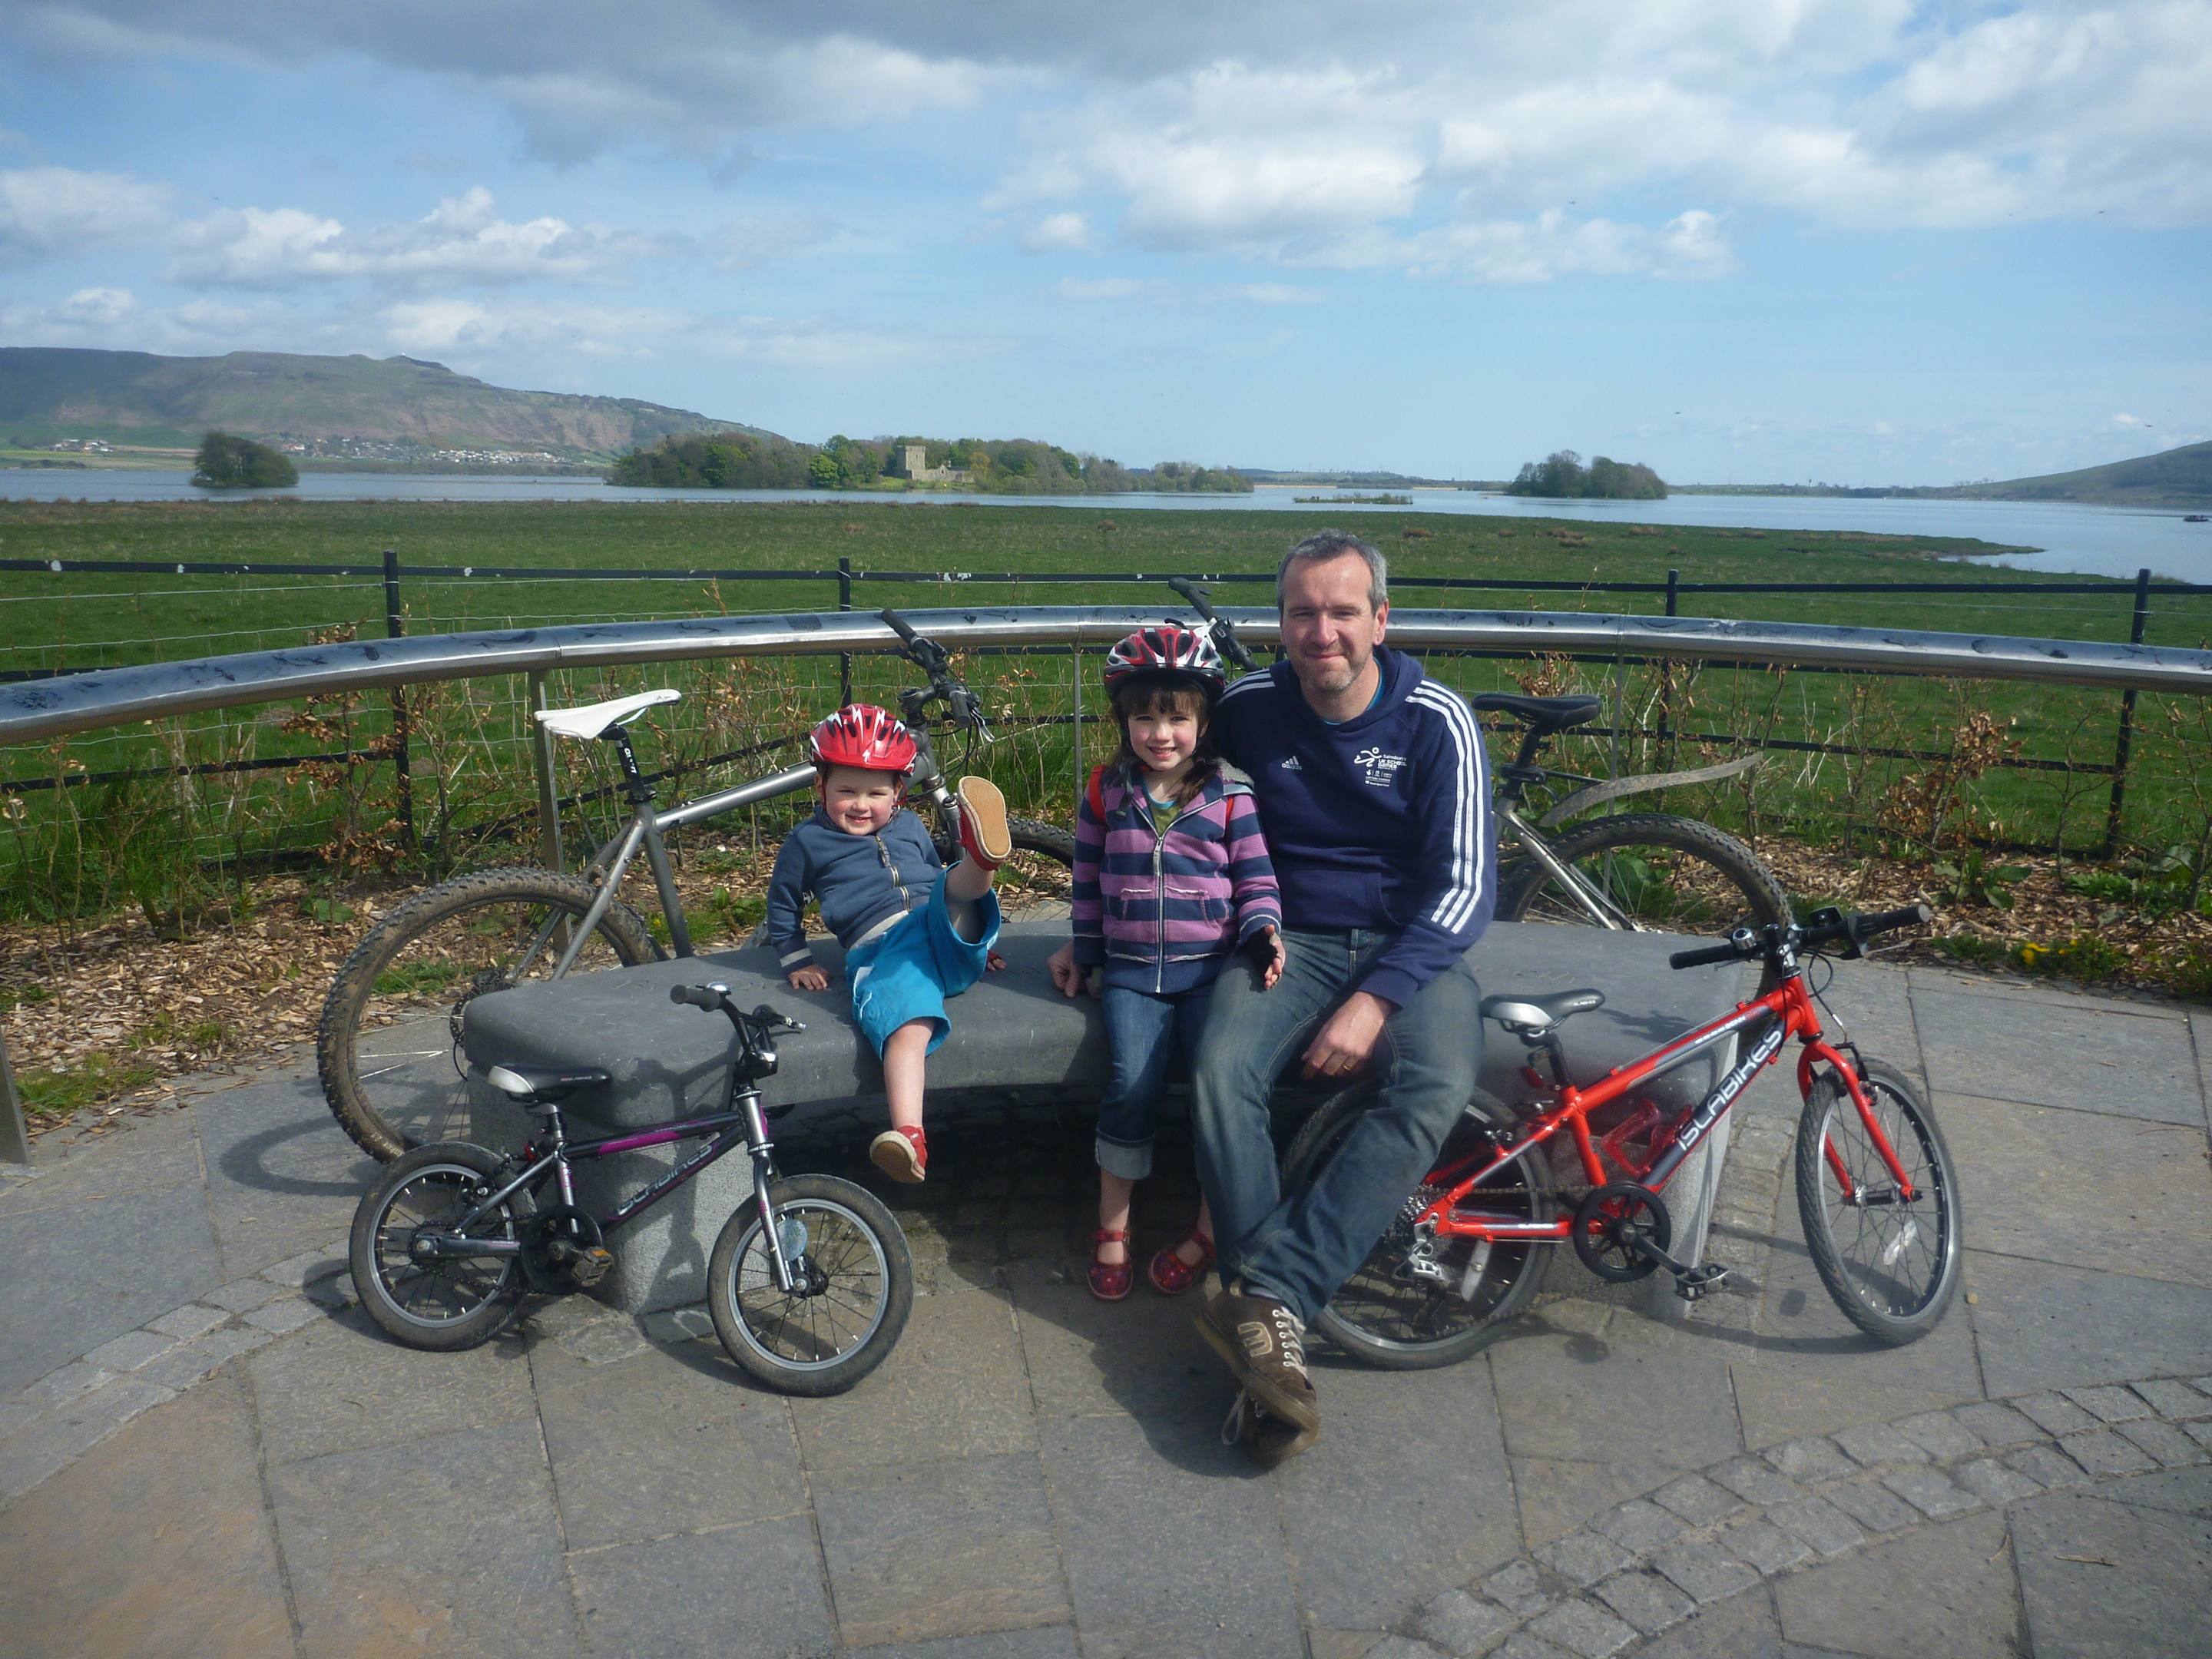 Scot and his children MacTavish and Maisie: Loch Leven is a great place for a first family cycle